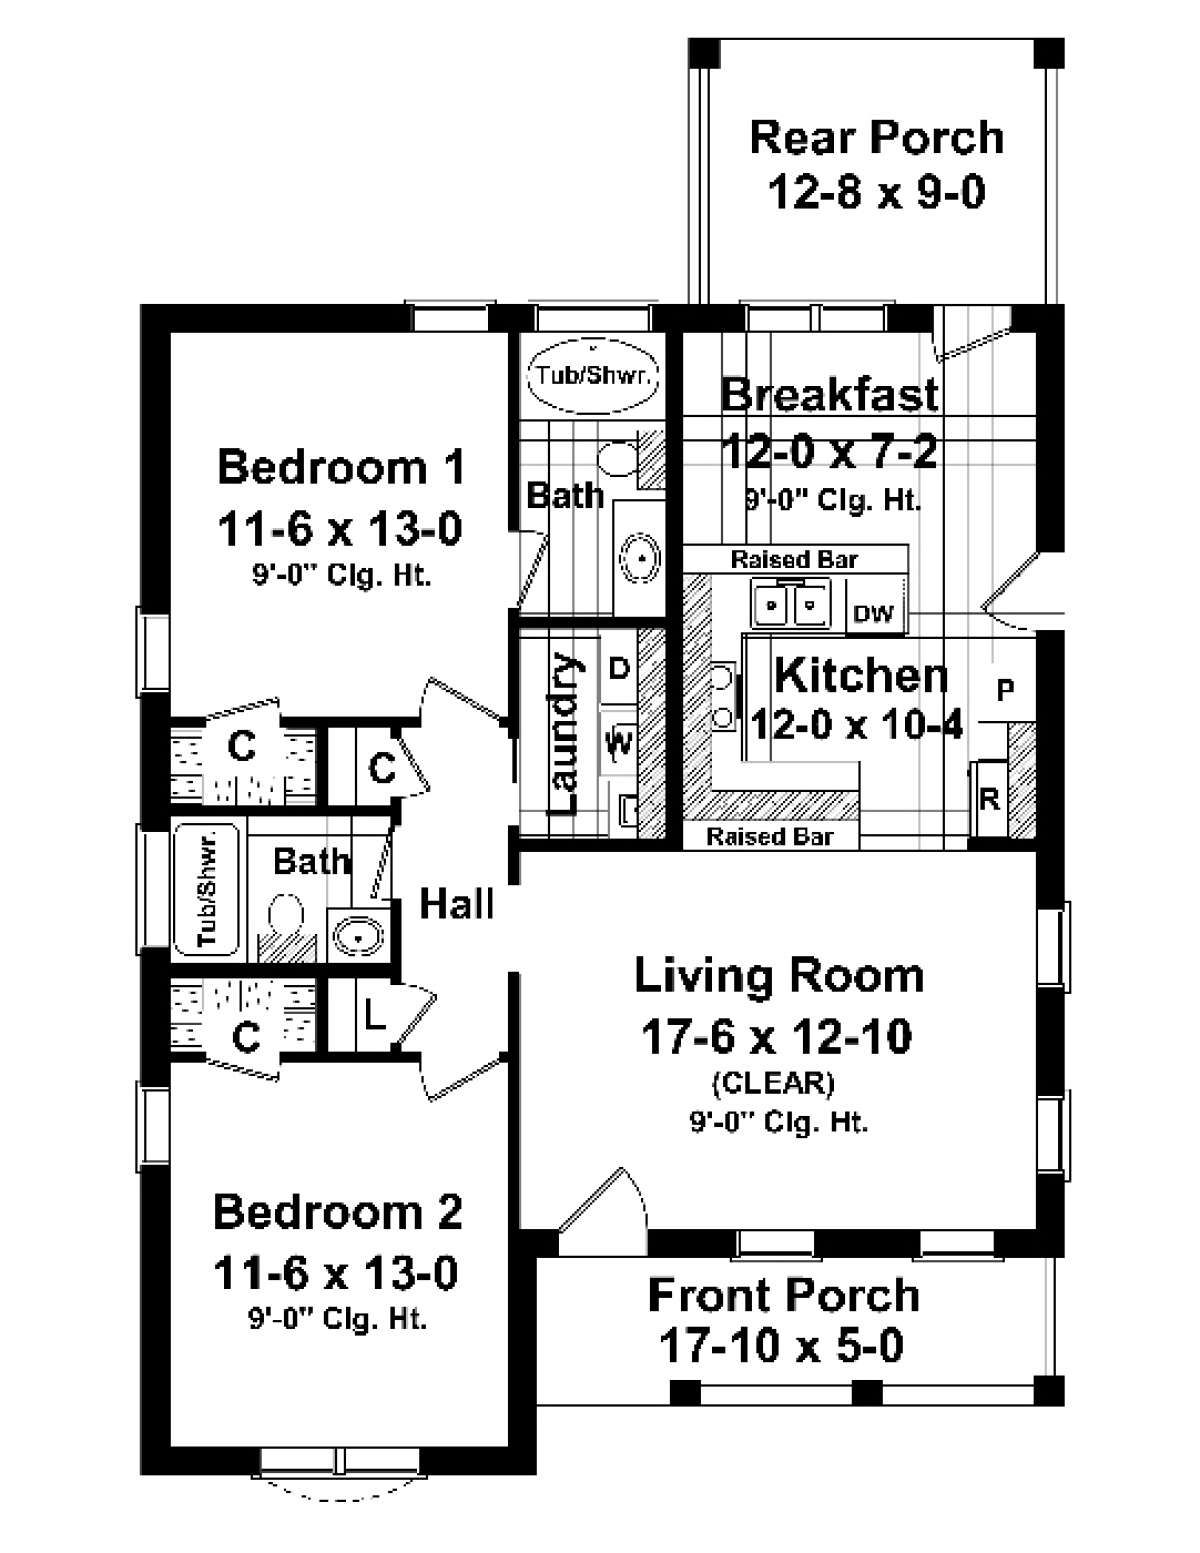 House Plan 348 00005 Traditional Plan 1 100 Square Feet 2 Bedrooms 2 Bathrooms In 2021 Two Bedroom House Cottage Style House Plans Bedroom House Plans